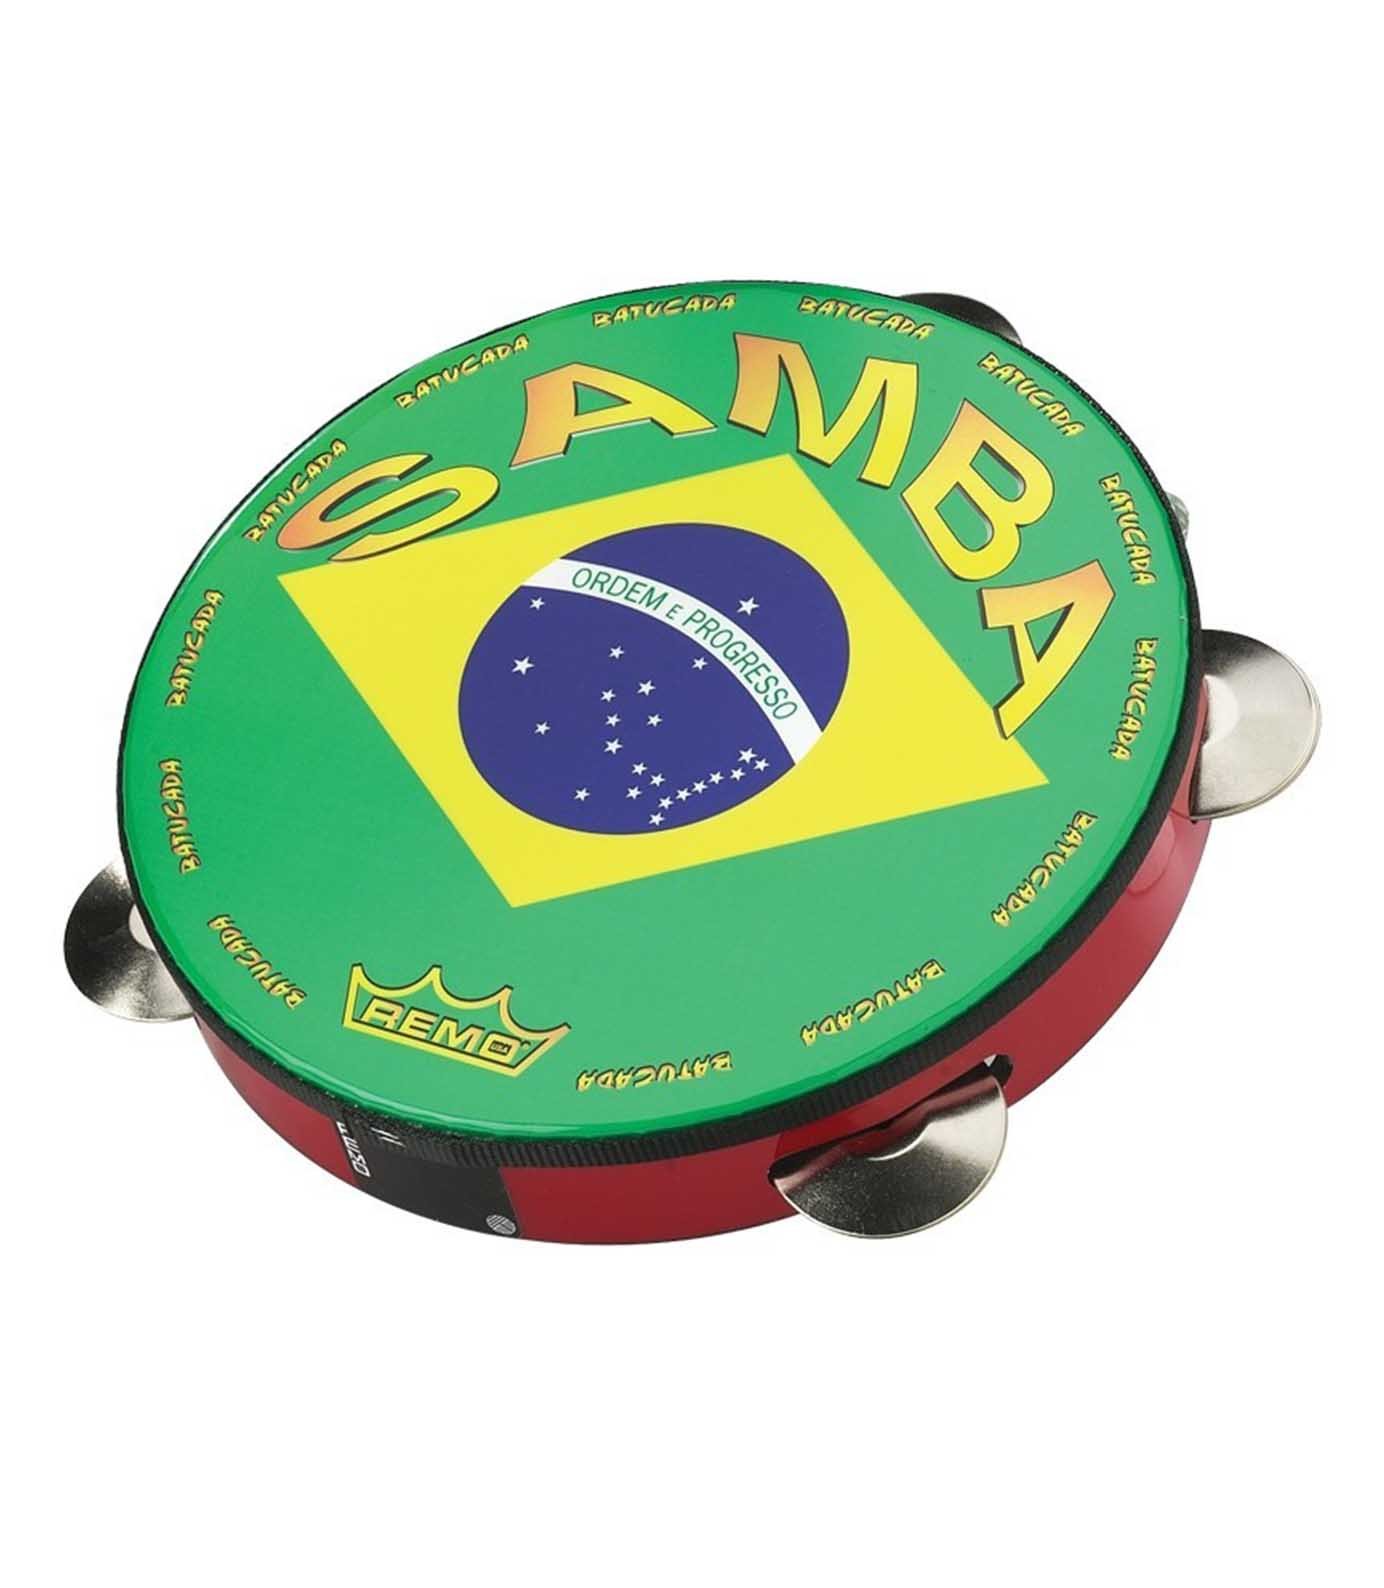 buy remo valencia samba pandeiro drum cherry red 10 inch